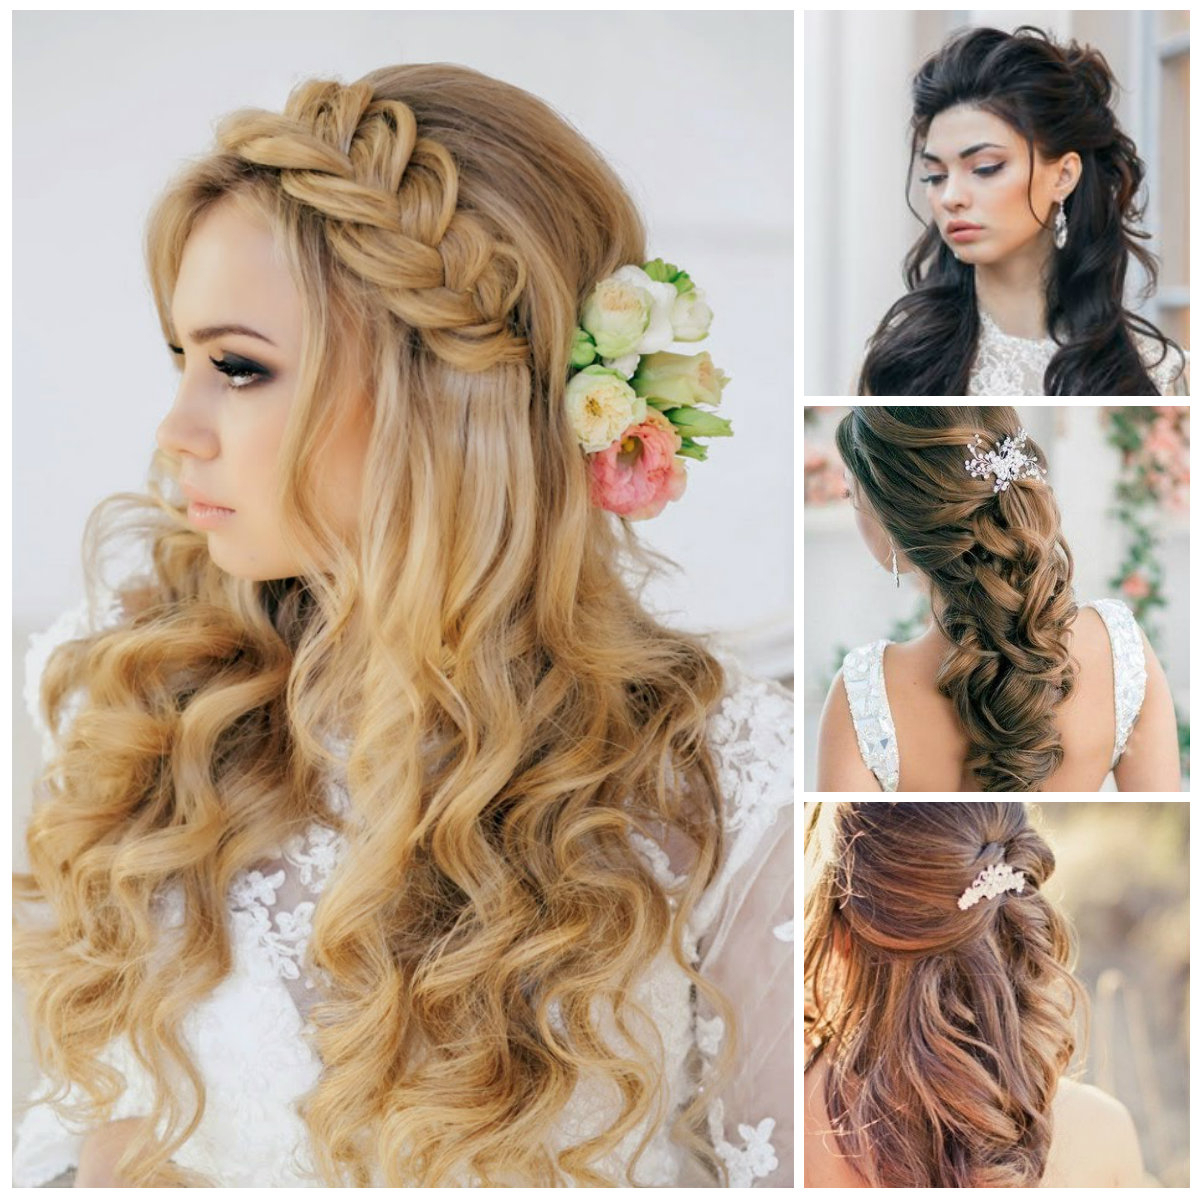 Most Recently Released Soft Shoulder Length Waves Wedding Hairstyles In Haircuts, Hairstyles 2019 And Hair Colors For Short Long & Medium Hair (View 18 of 20)